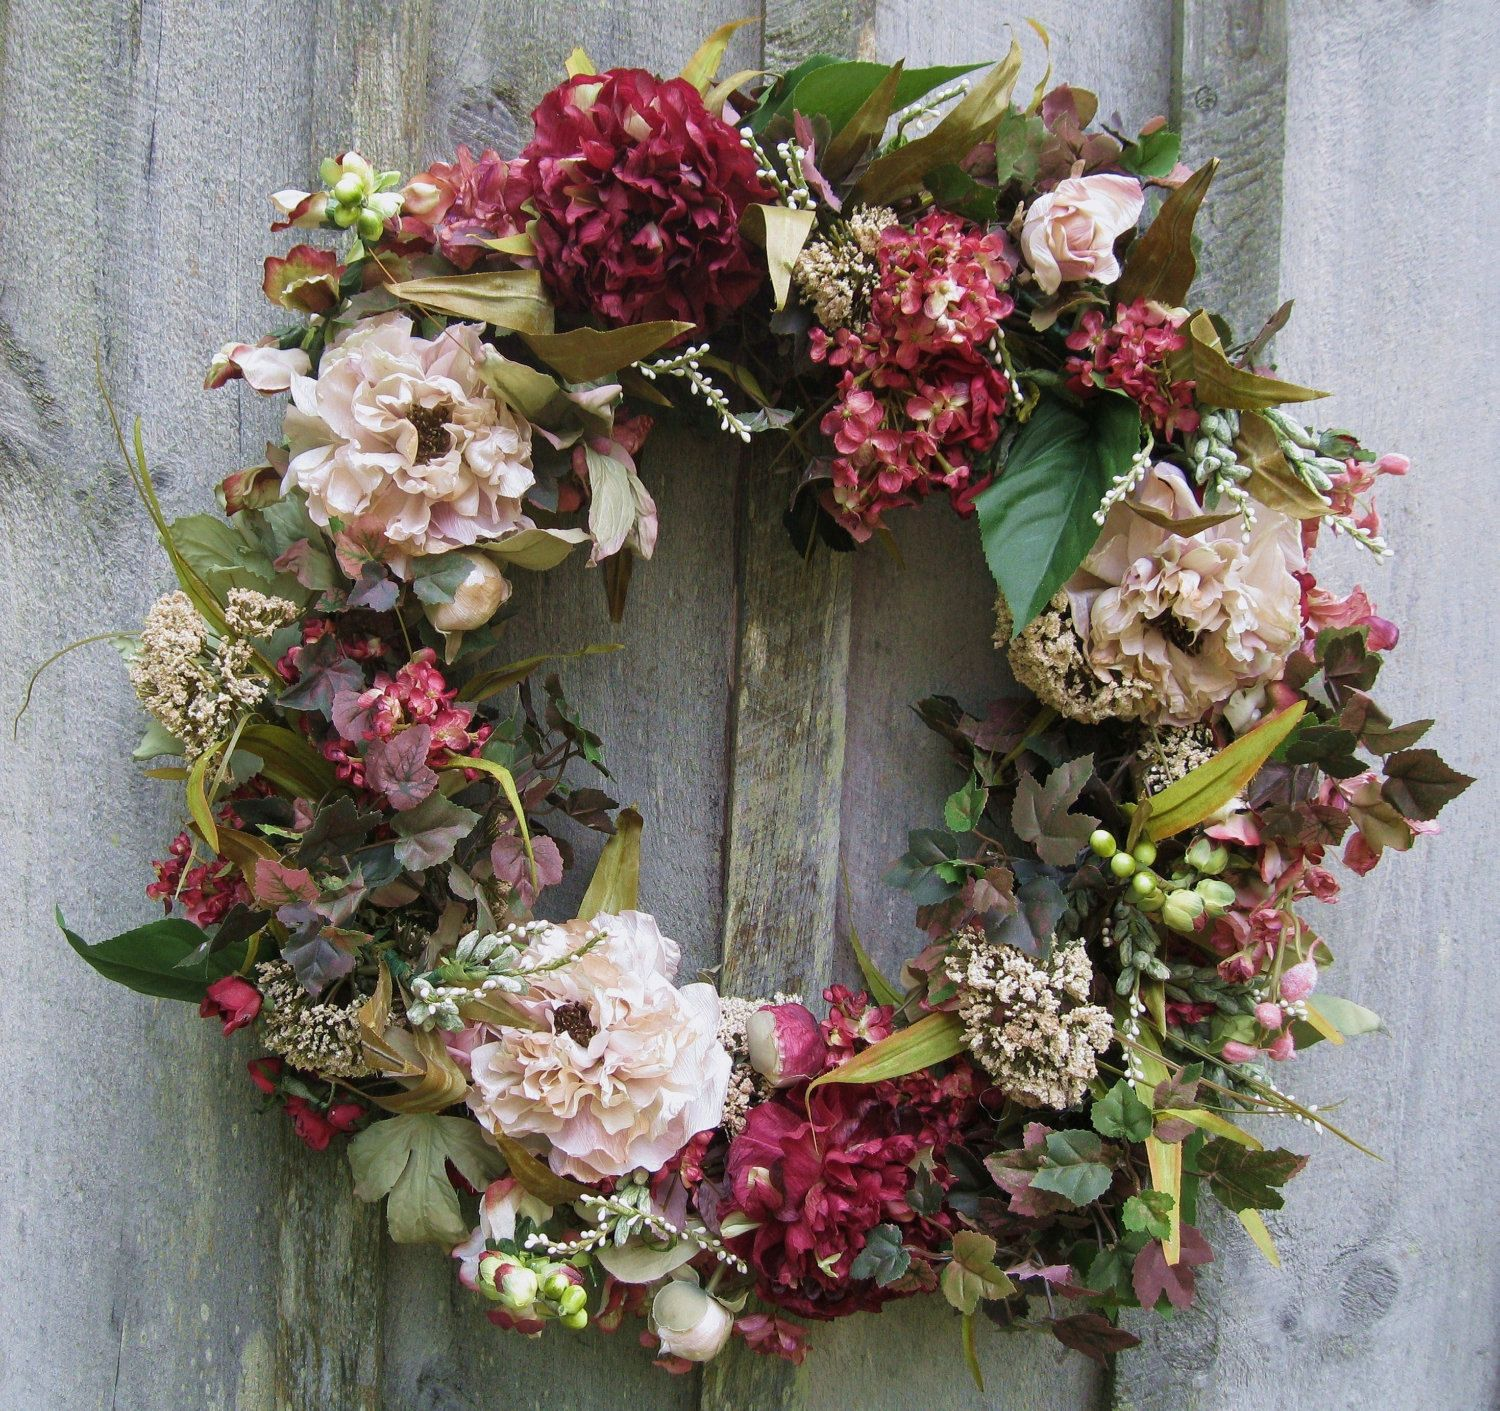 floral wreath hydrangea wreath floral door decor victorian garden decor country french